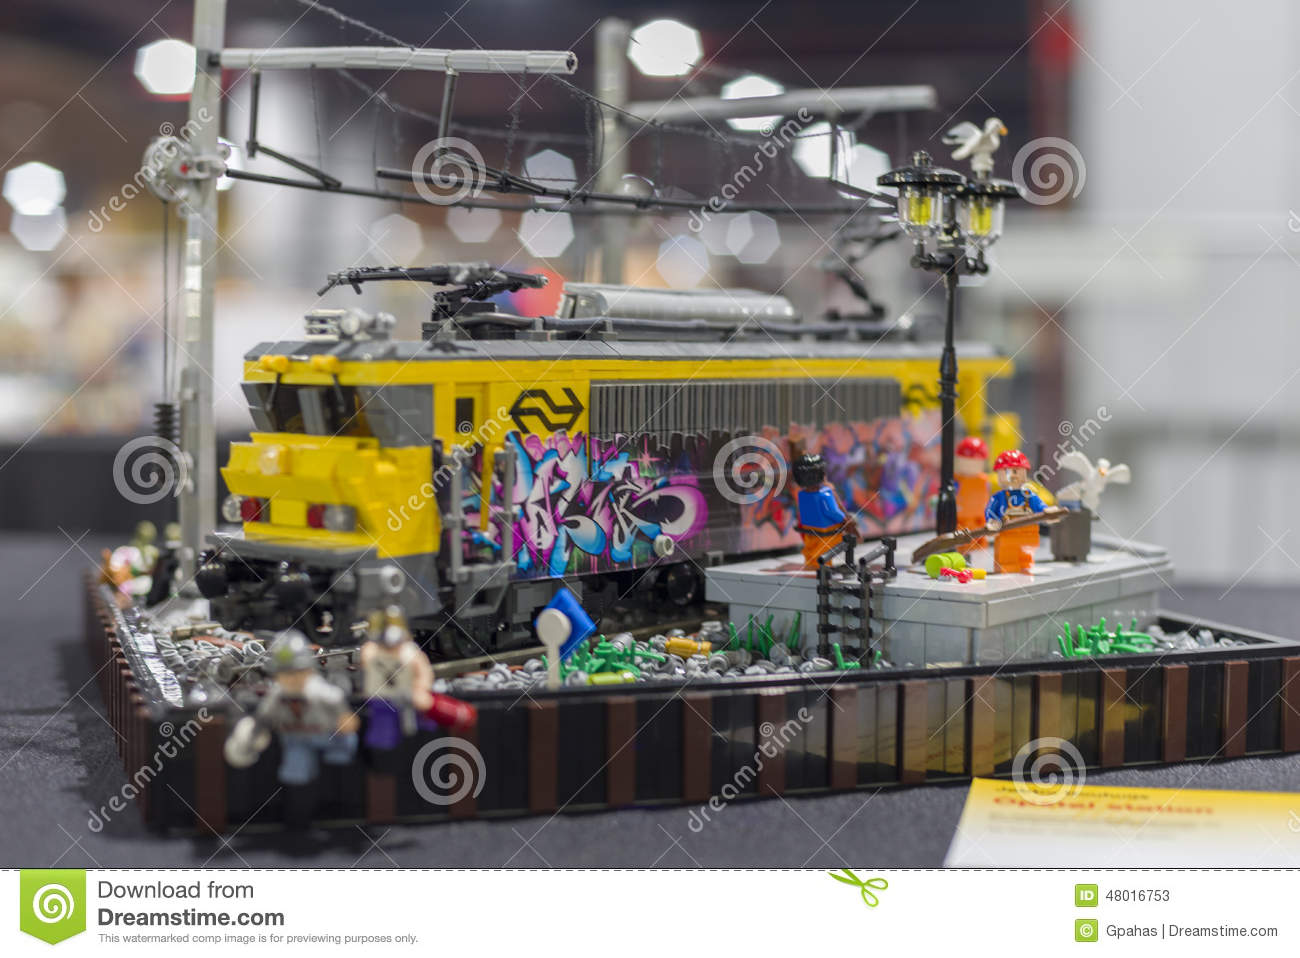 Bauanleitung Playmobil Lego Train Editorial Stock Photo - Image: 48016753